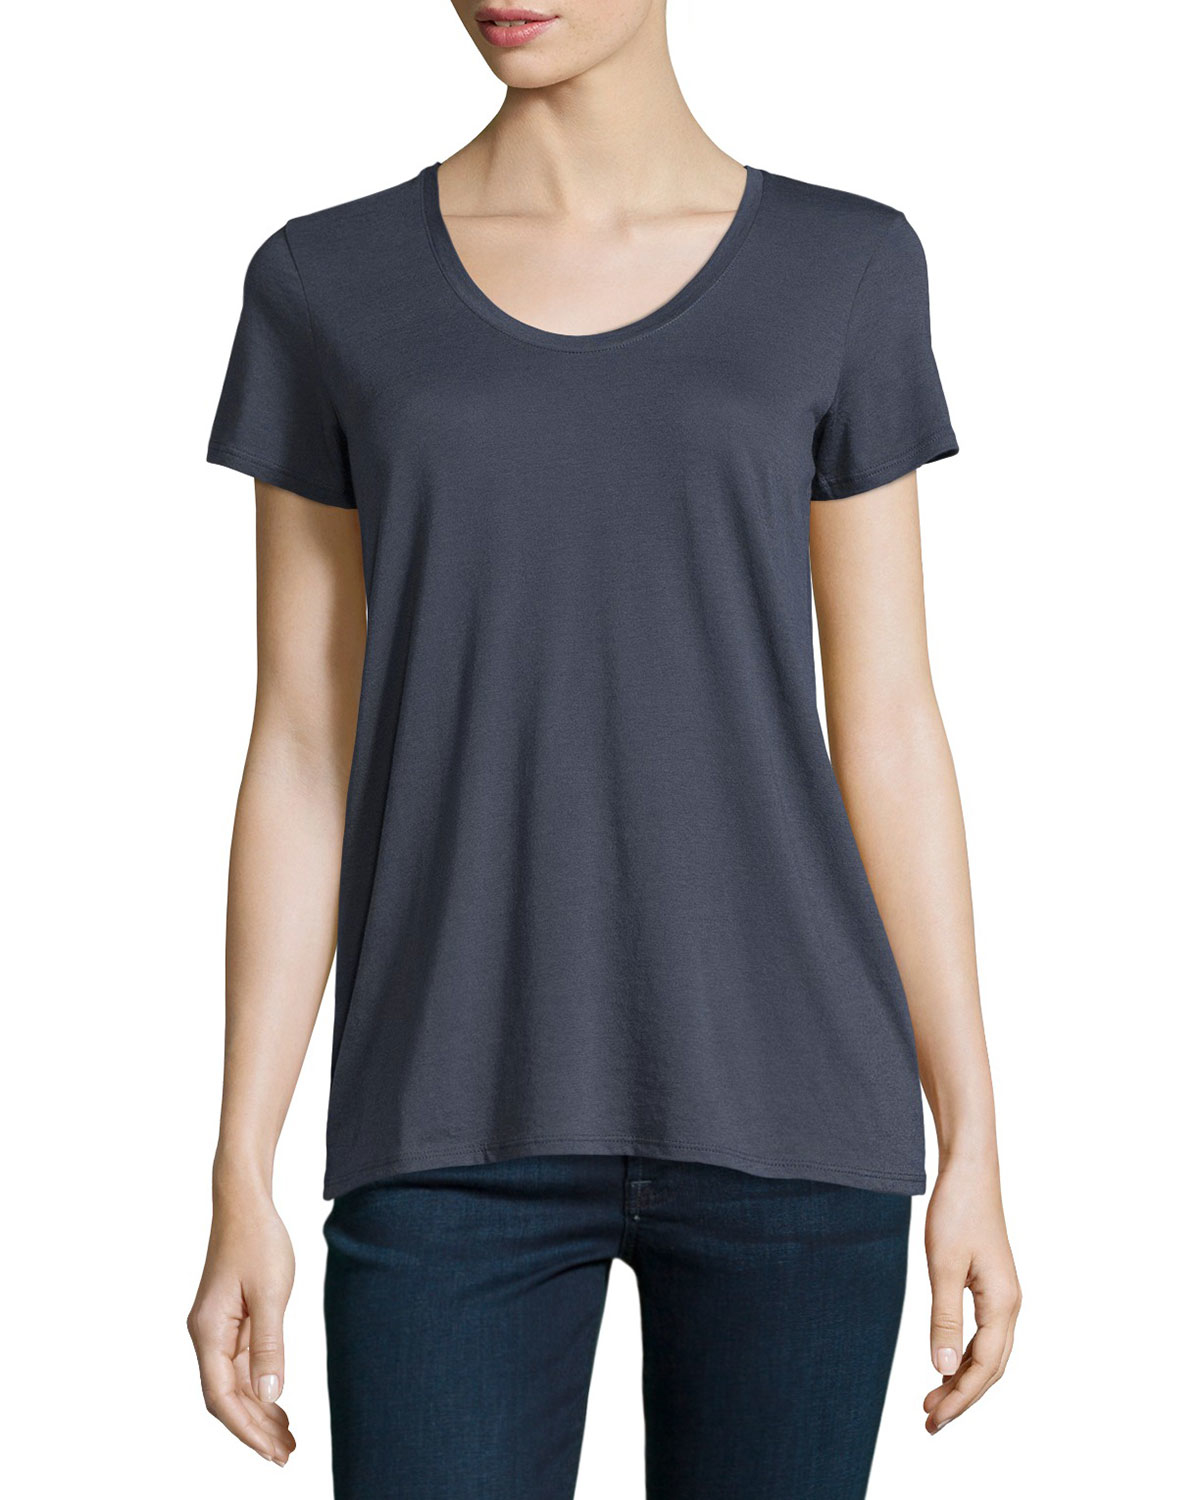 Vince scoop neck jersey tee in black lyst for Vince tee shirts sale